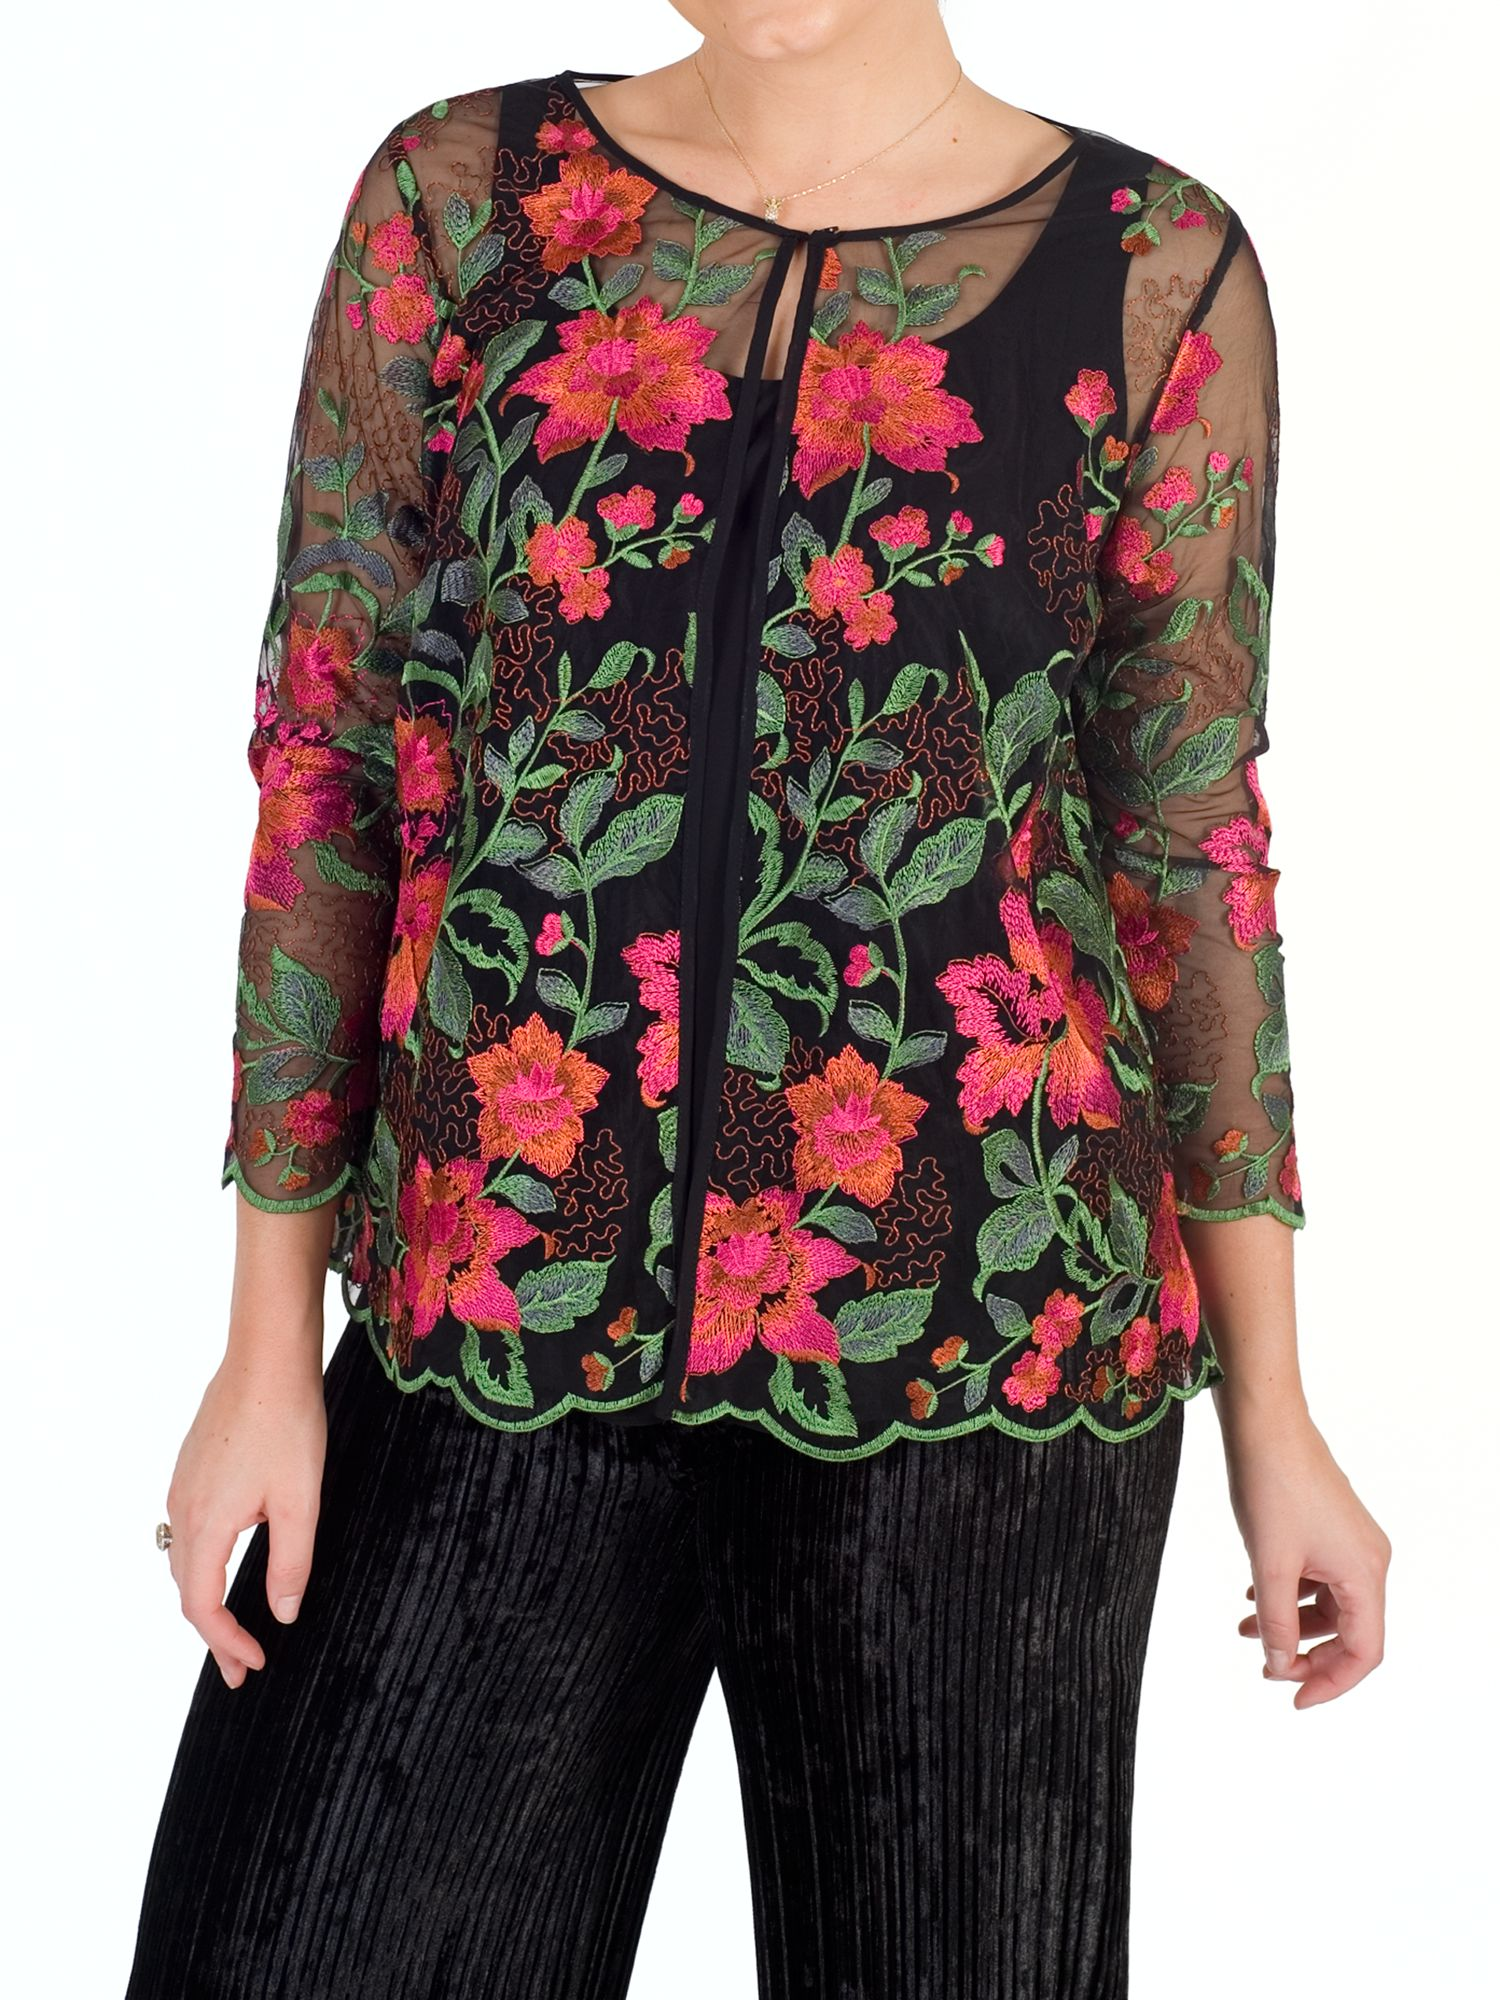 Chesca Chesca Scallop Trim Embroidered Jacket, Black/Pink